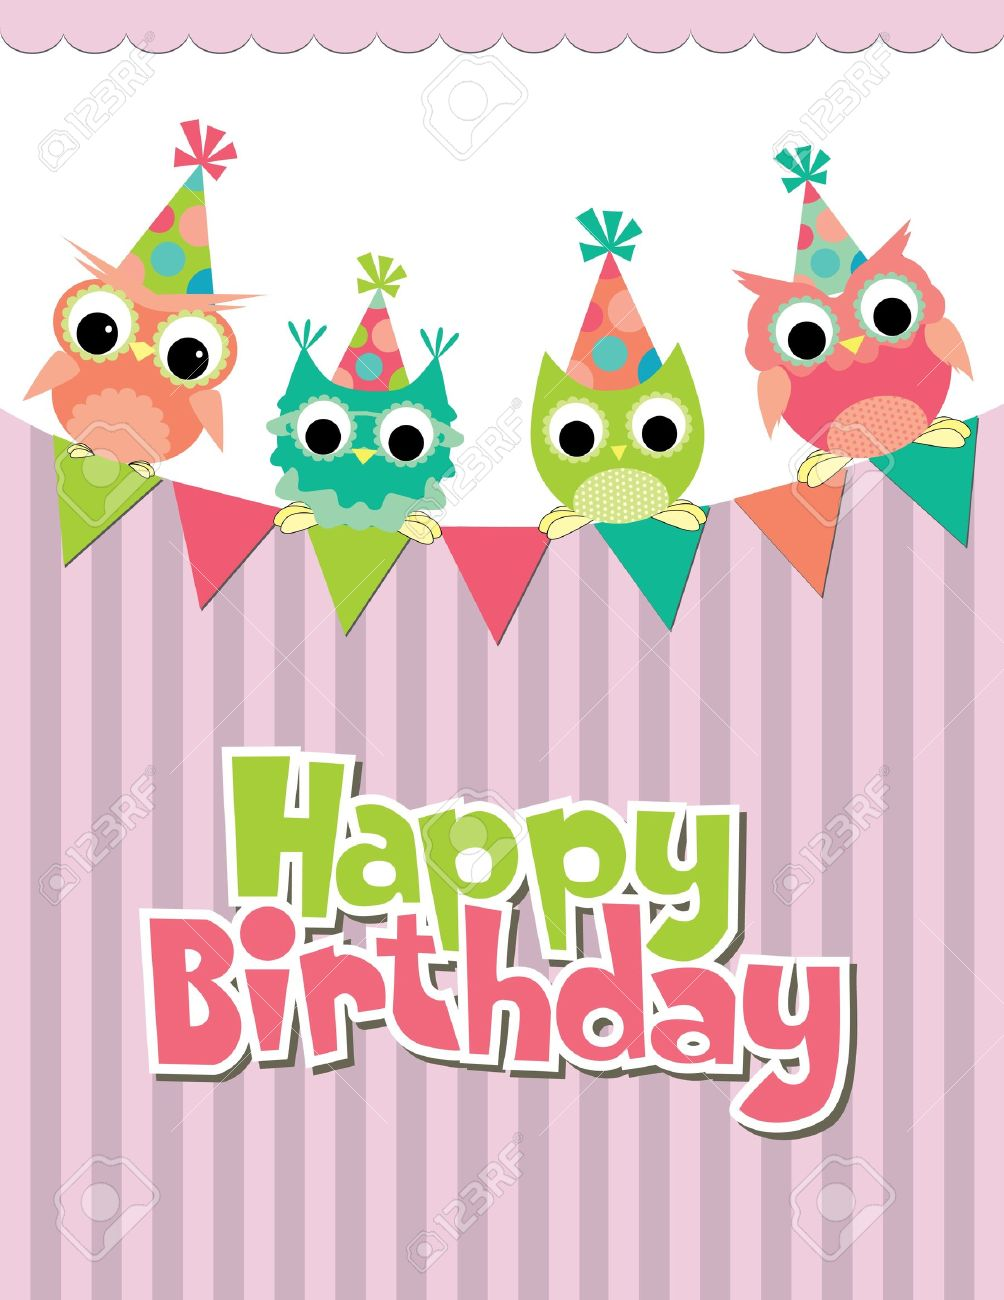 happy birthday card design vector illustraton royalty free, Birthday card